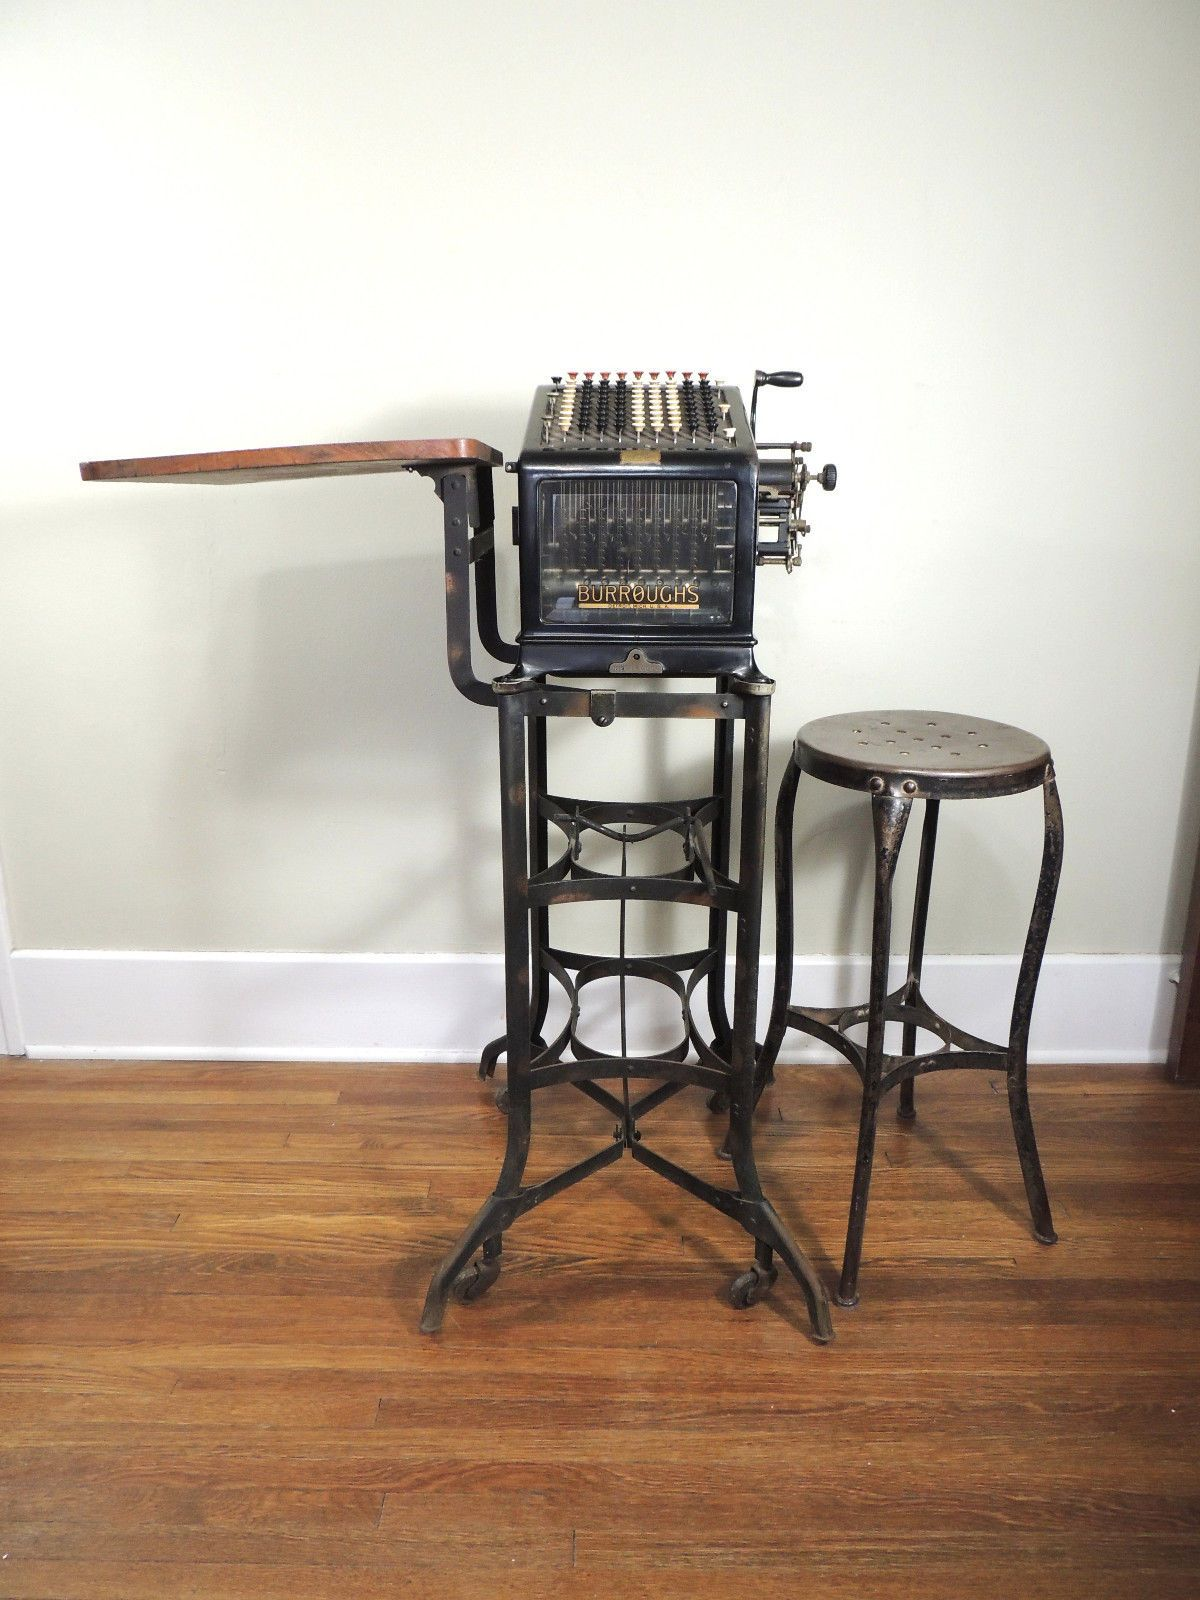 Burroughs Antique Adding Machine with Desk and Chair